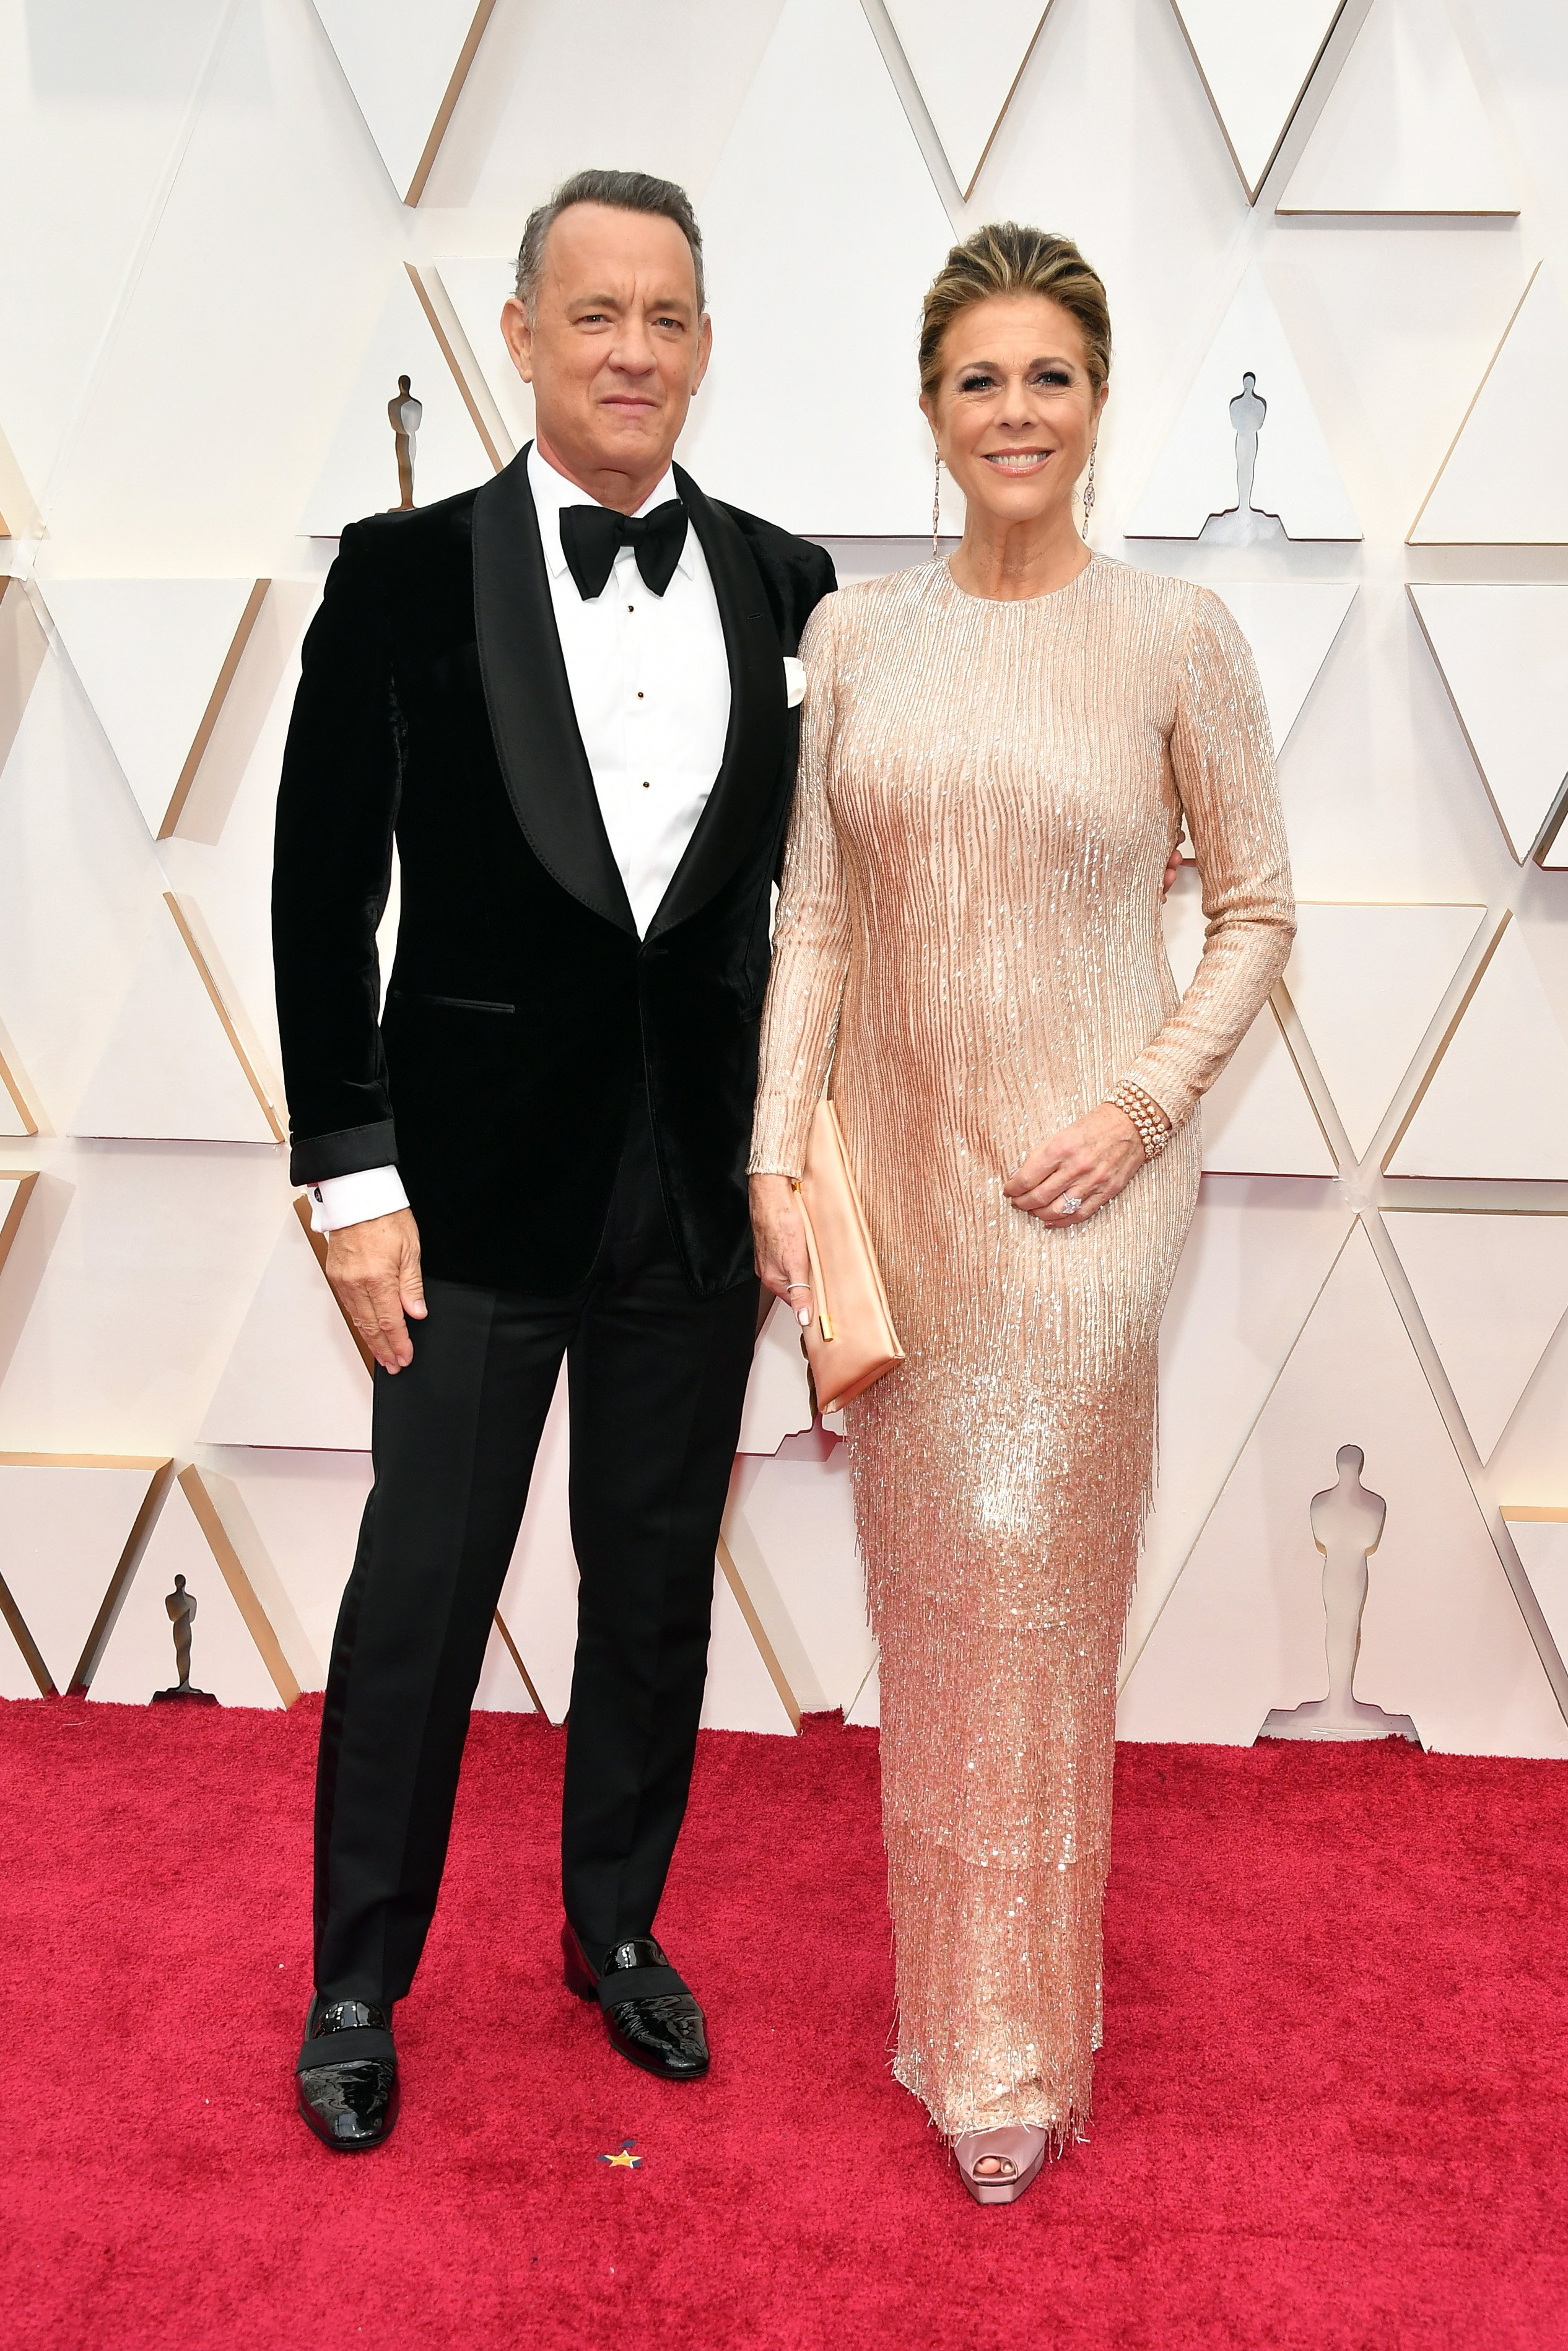 Tom Hanks and Rita Wilson attend the 92nd Annual Academy Awards at Hollywood and Highland on February 09, 2020 in Hollywood, California.  Source: Getty Images